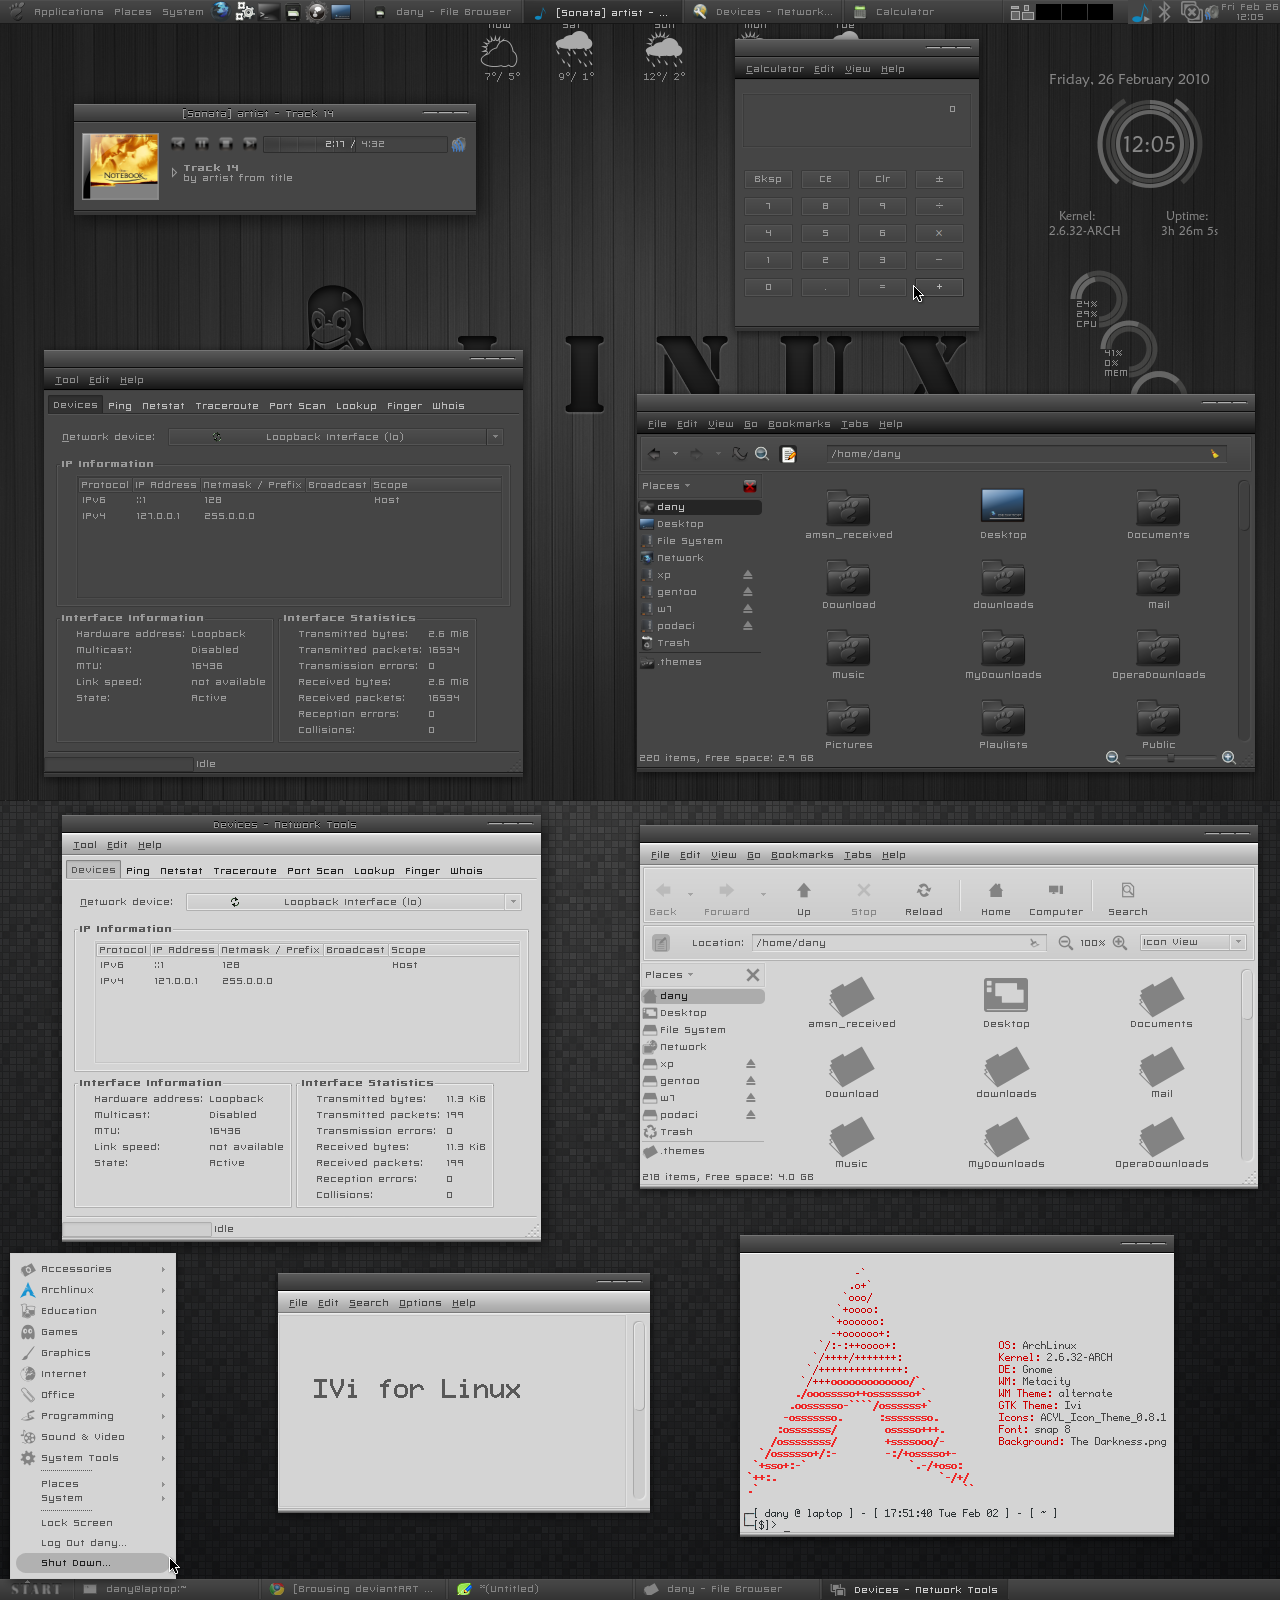 Ivi for Linux